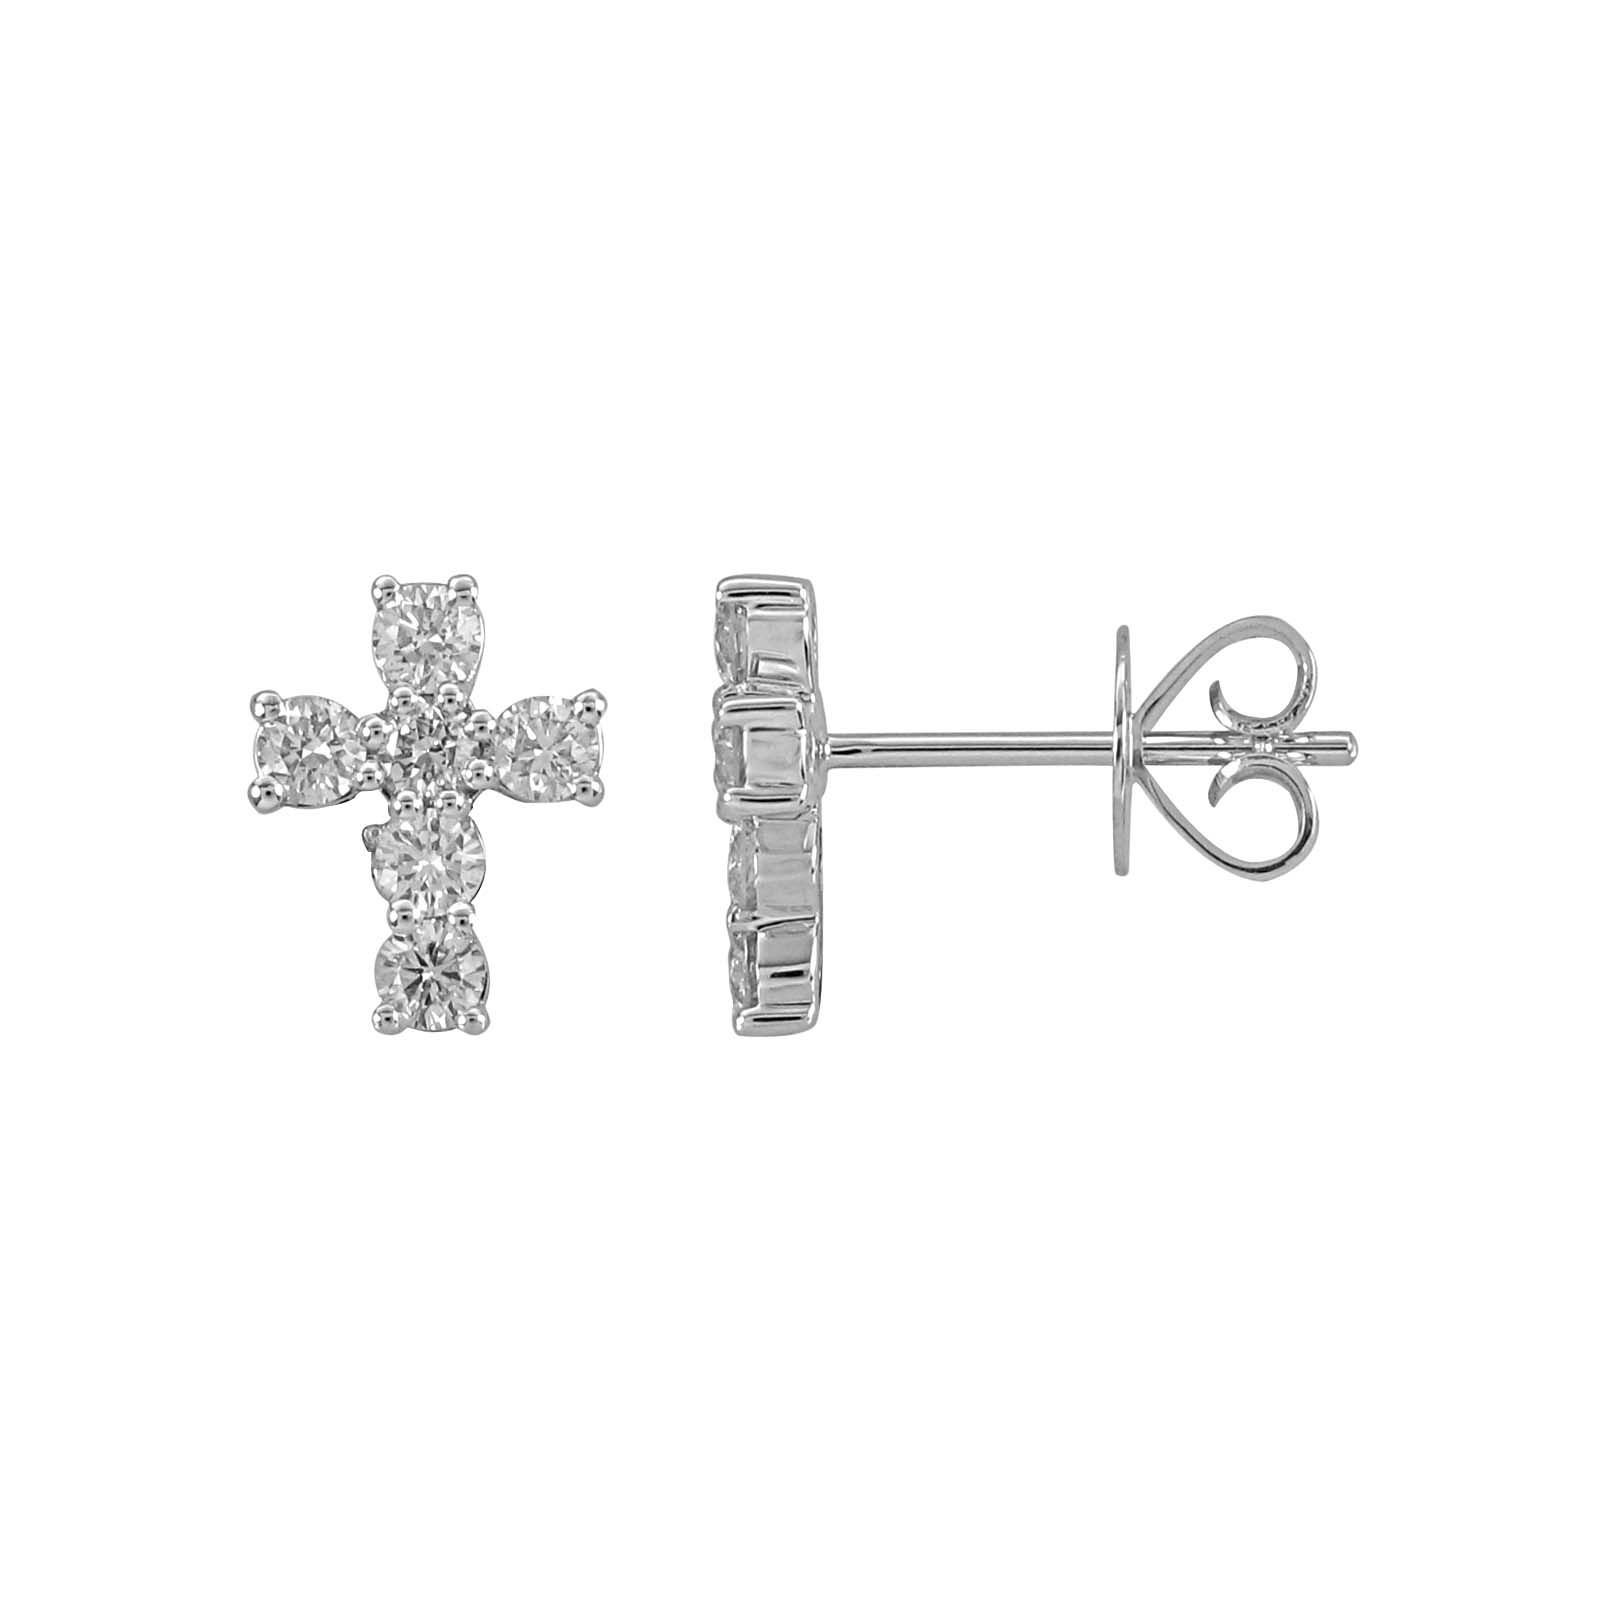 London Collection White Gold Diamond Cross Earrings